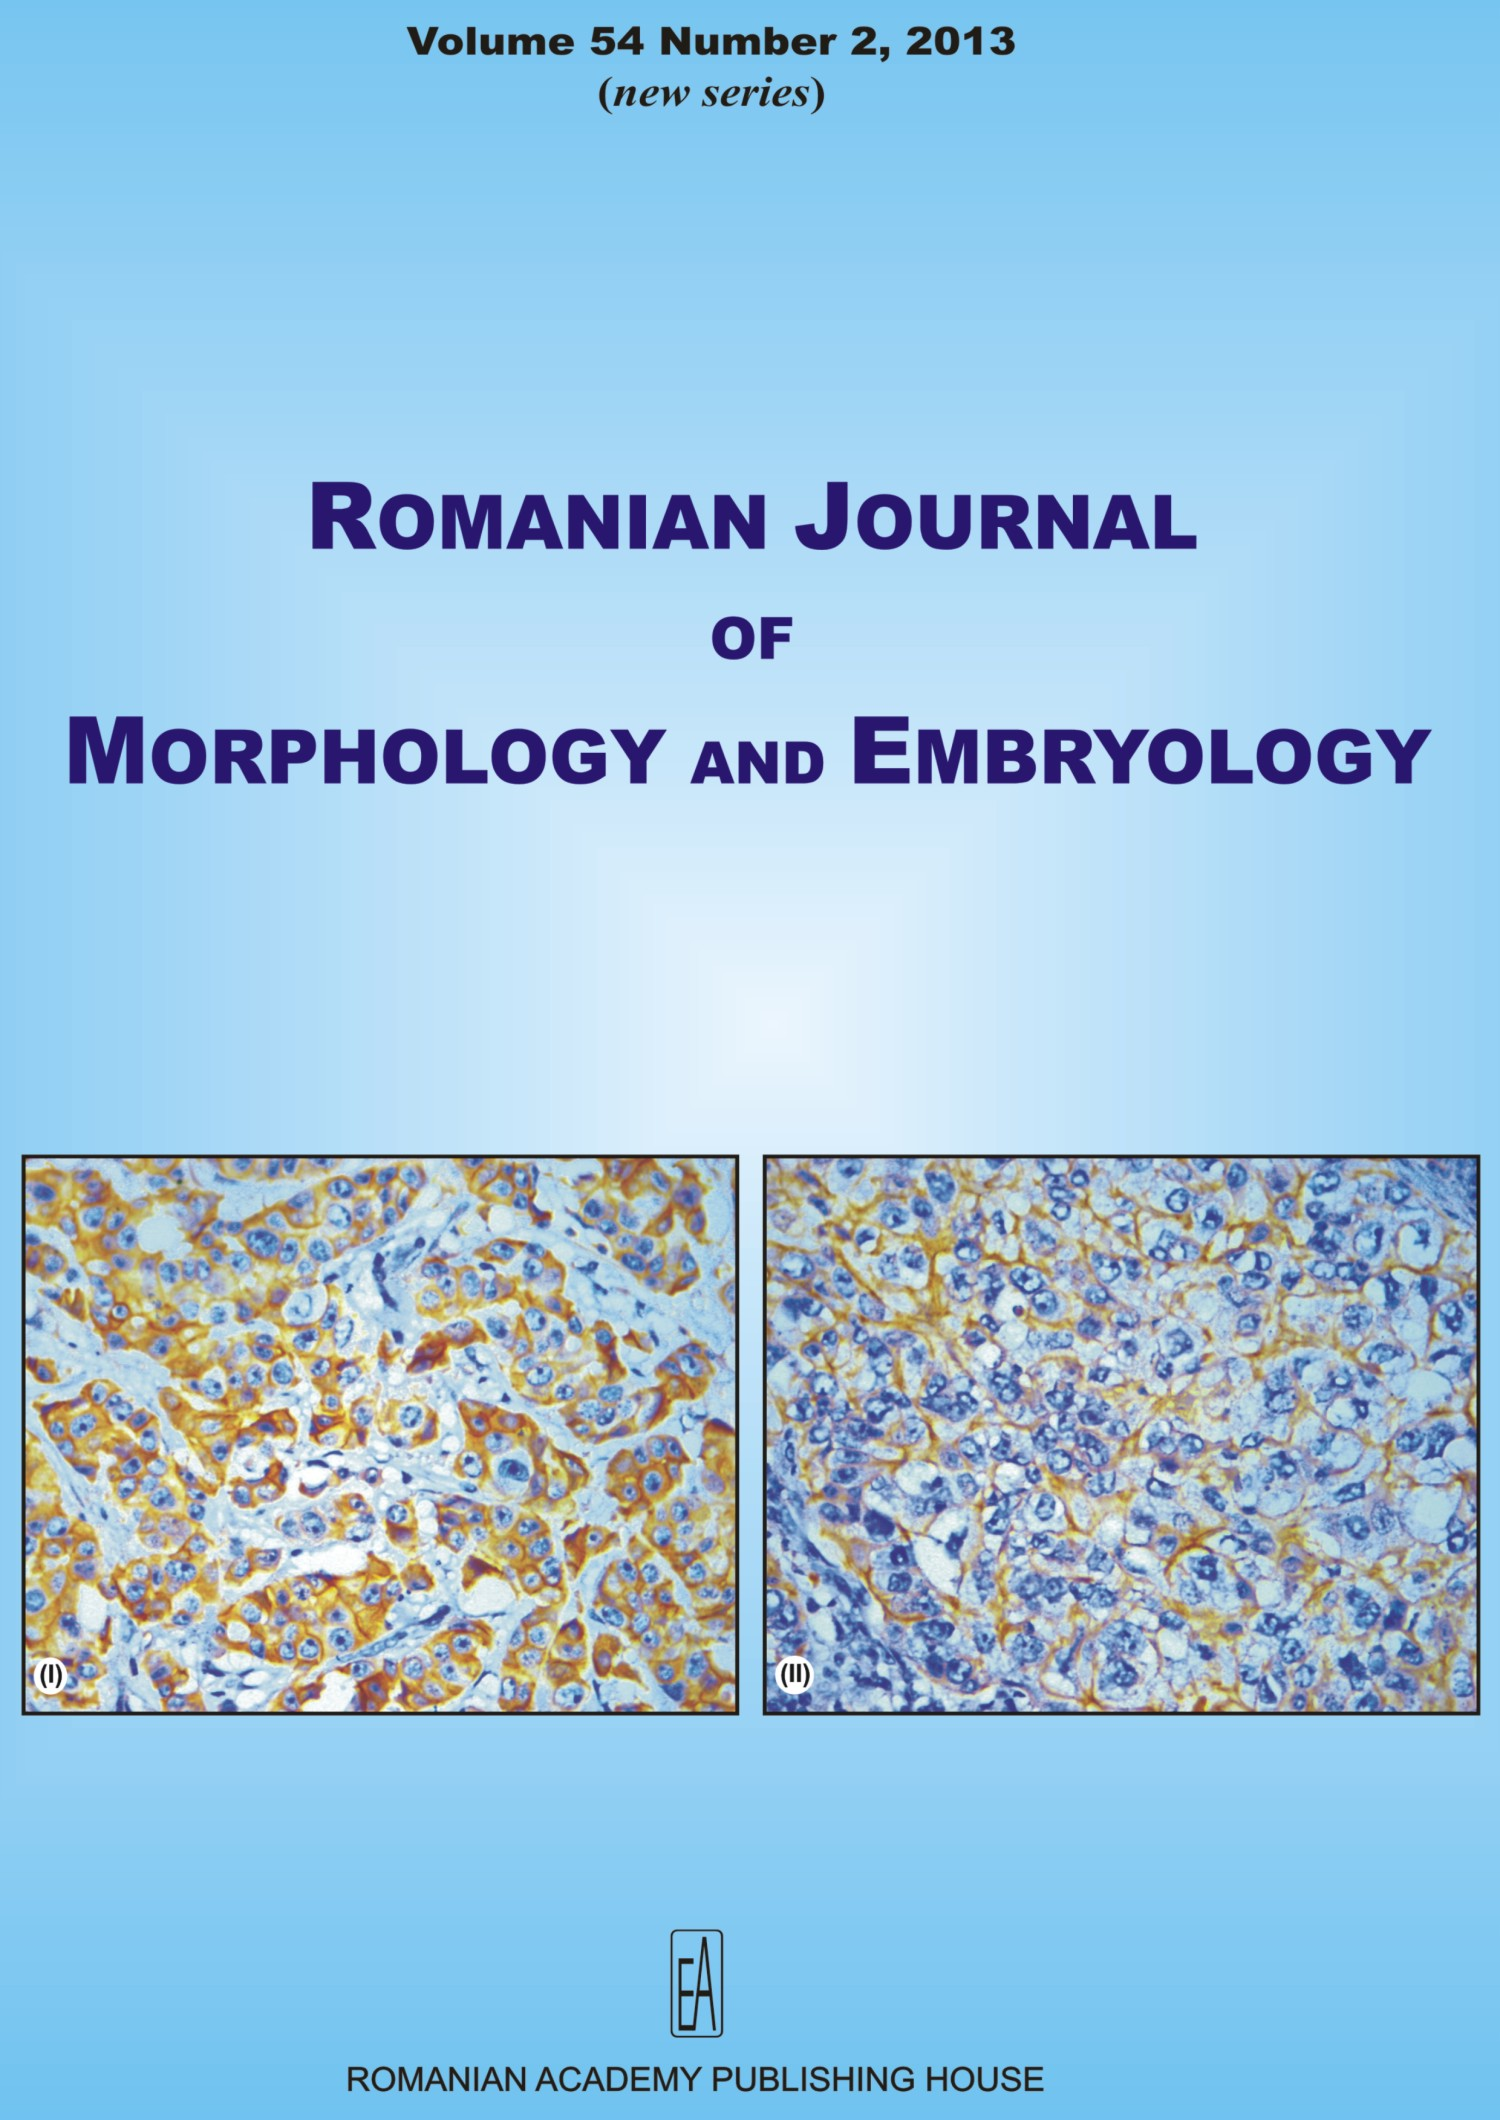 Romanian Journal of Morphology and Embryology, vol. 54 no. 2, 2013